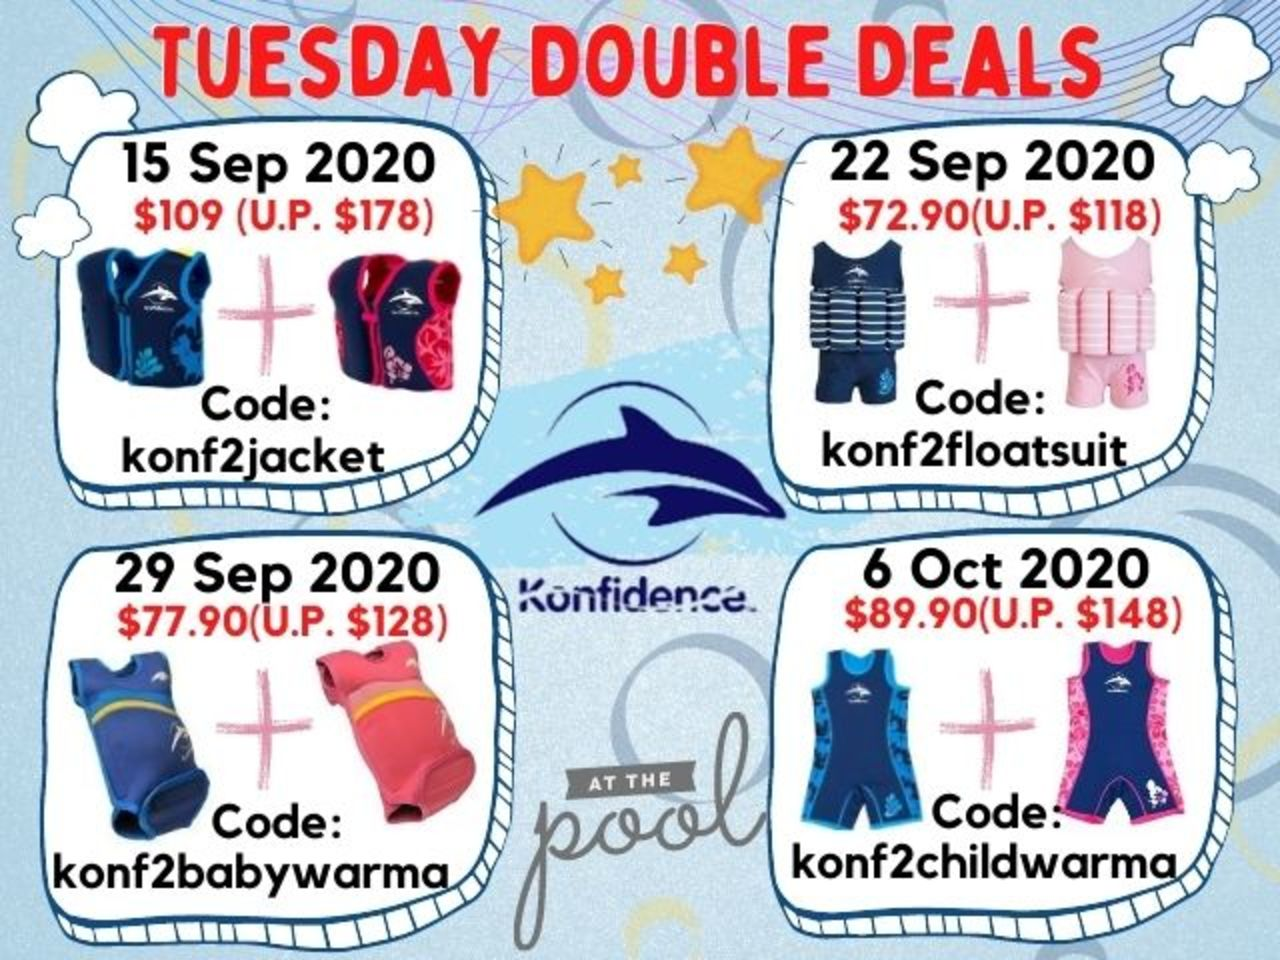 Tue 29 Sept Deal: The Konfidence BabyWarma Buy 2 at Only $77.90-$87.90 (RRP $128-138)